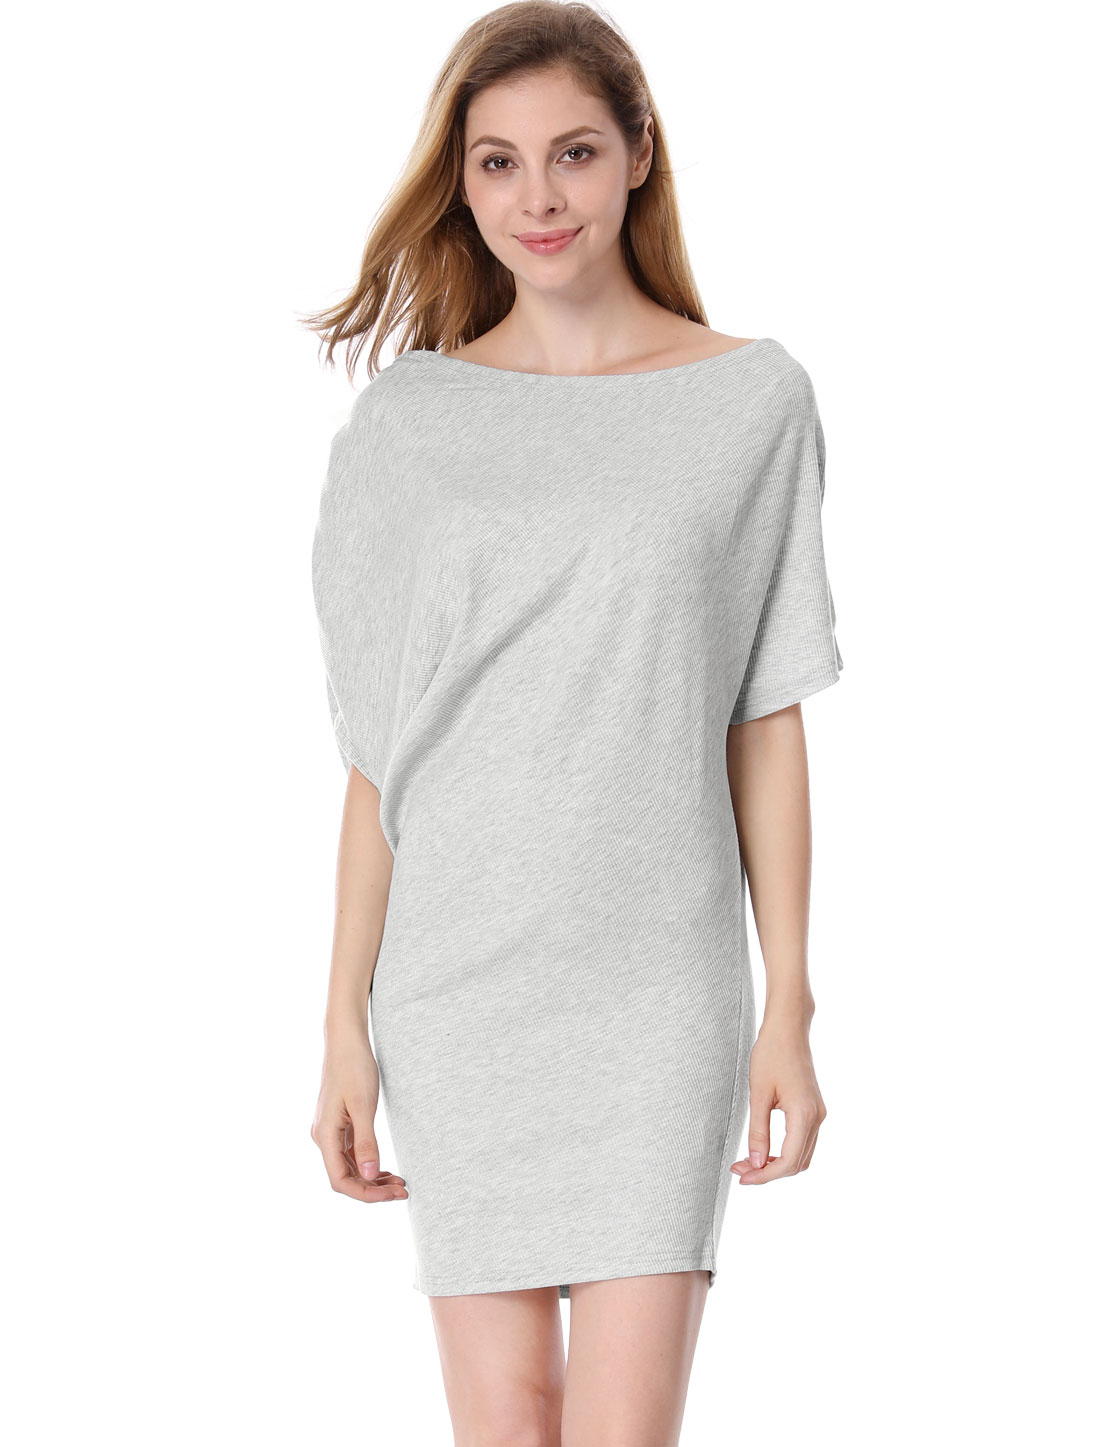 Ladies Light Gray Batwing Sleeves Pullover Stretchy Summer Dress S